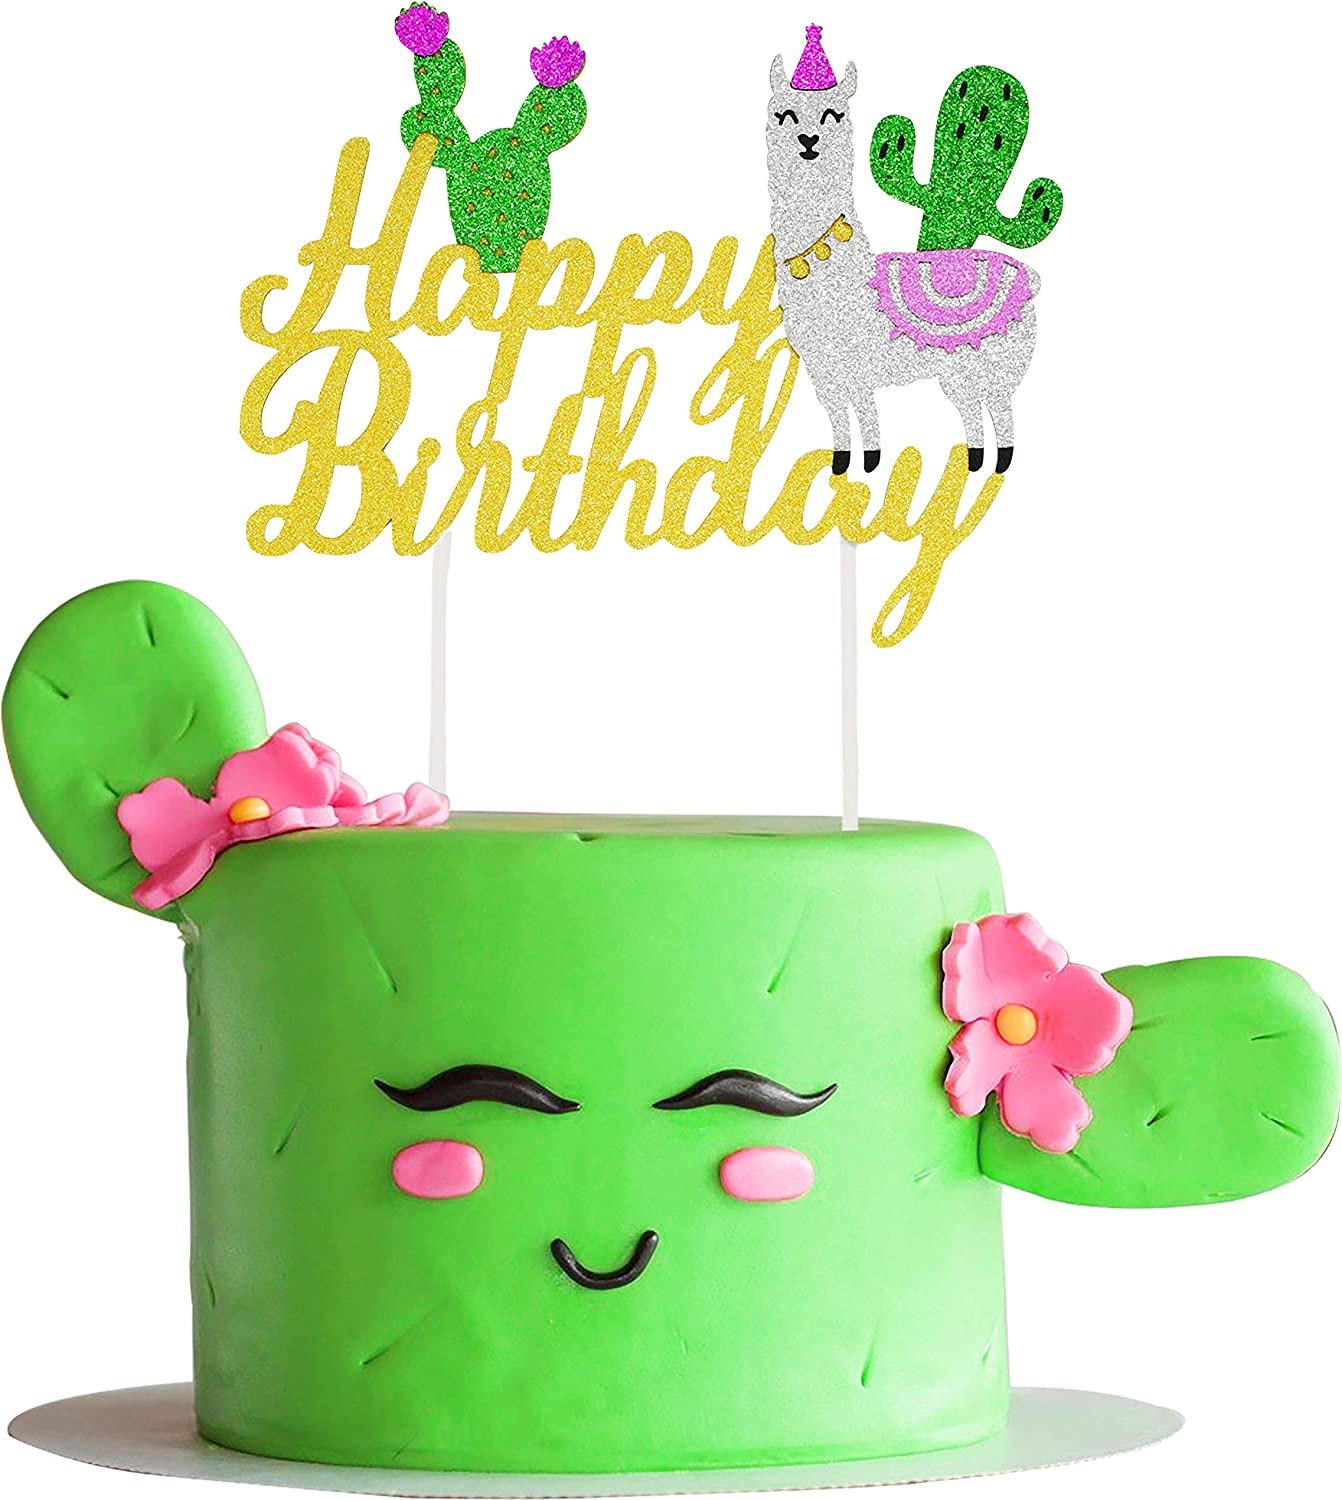 Gold Glitter Llama Cactus Los Angeles Mall Cake Topper Fiesta B for Theme Mexican Selling rankings